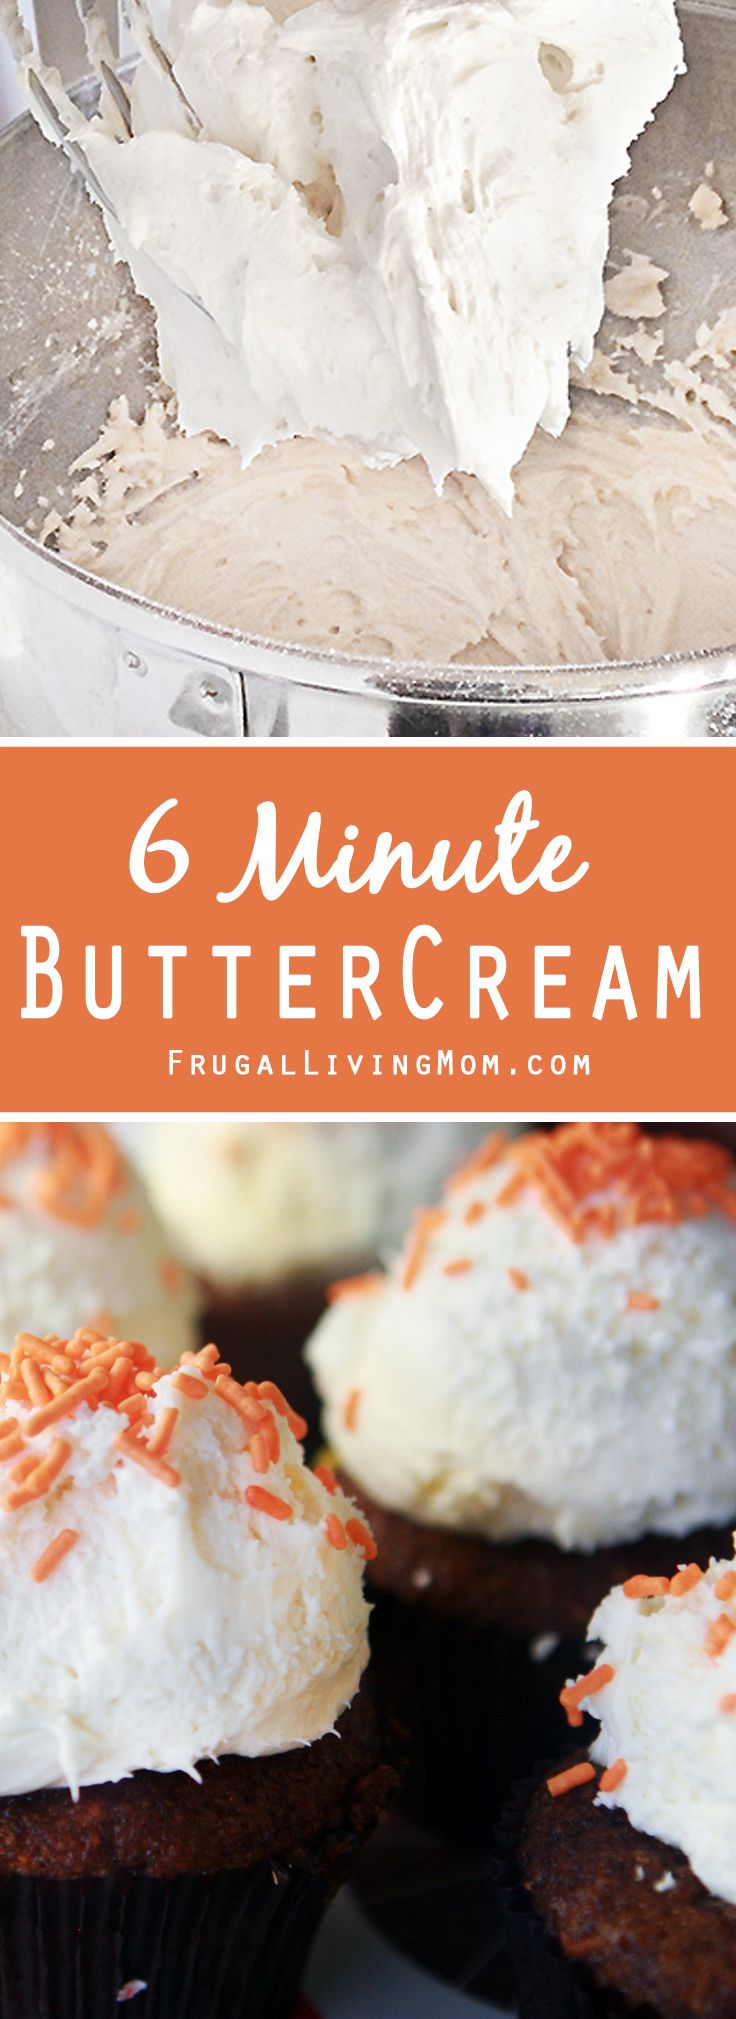 Don't you love homemade frosting? It's just so yummy. I could sit and eat a bowl. Buttercream is easy to make and only takes about 6 minutes.